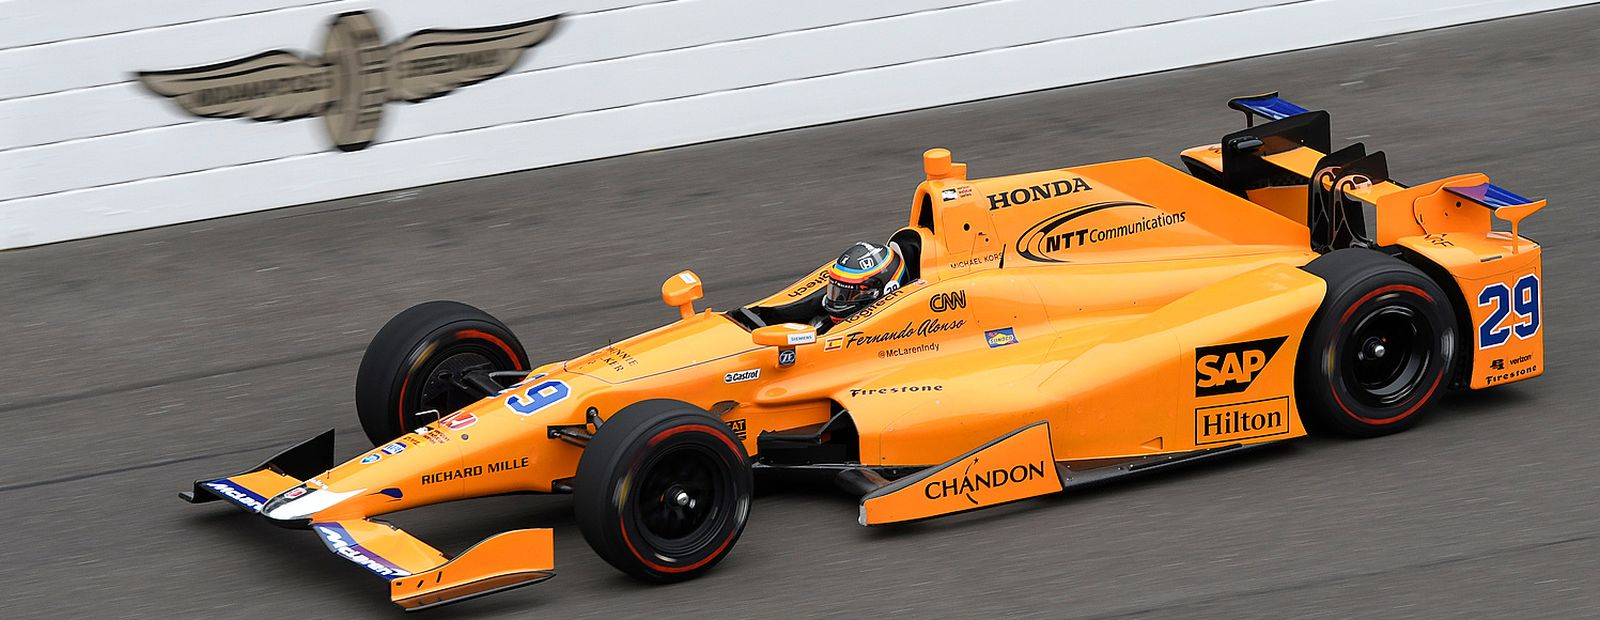 Fernando takes to the track with the McLaren-Honda-Andretti #29